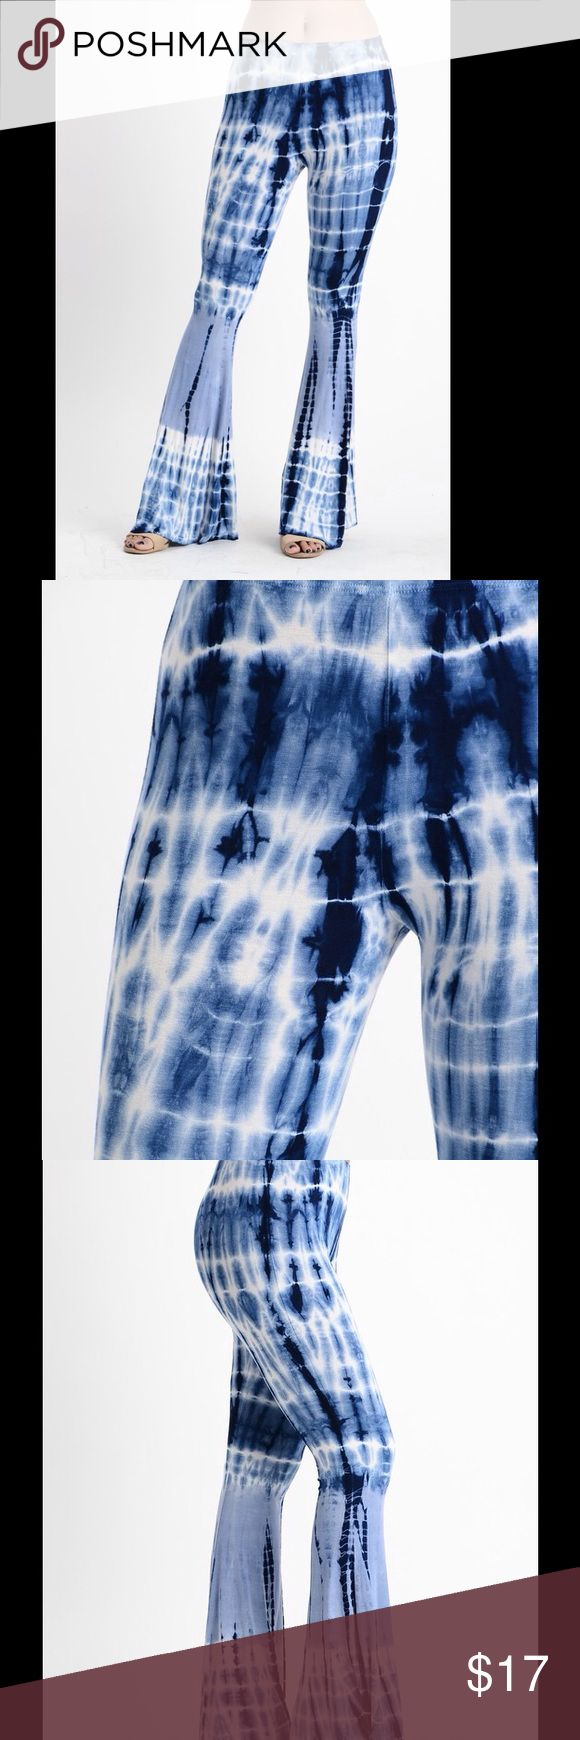 Electric Blue Tie Dye Bell Bottoms Very stylish high waisted bell bottoms Nu Label Clothing Pants Boot Cut & Flare